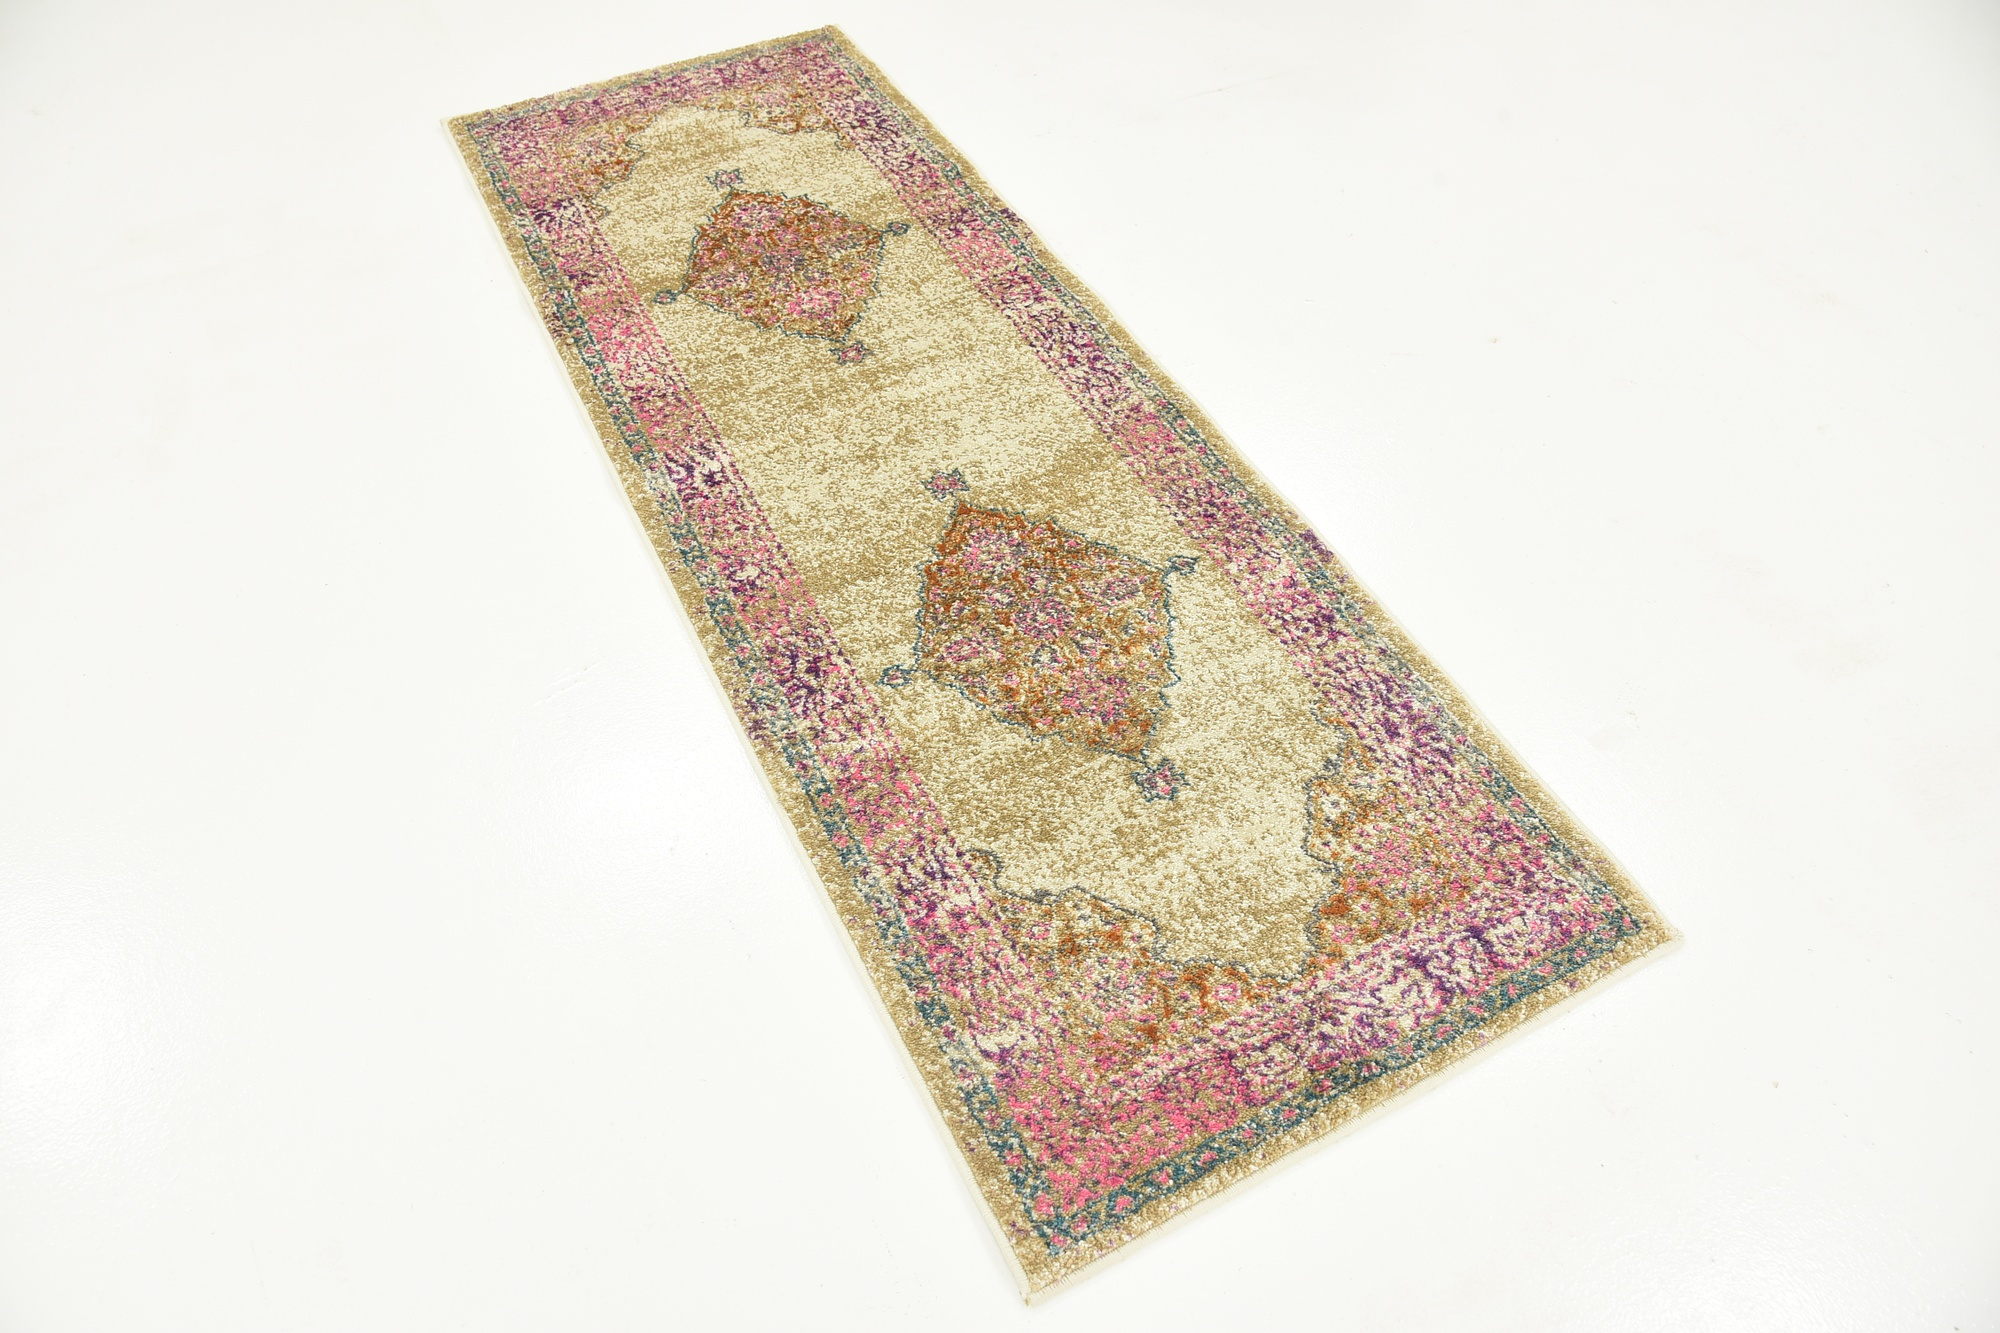 66x183 Aria Rug Irugs Singapore